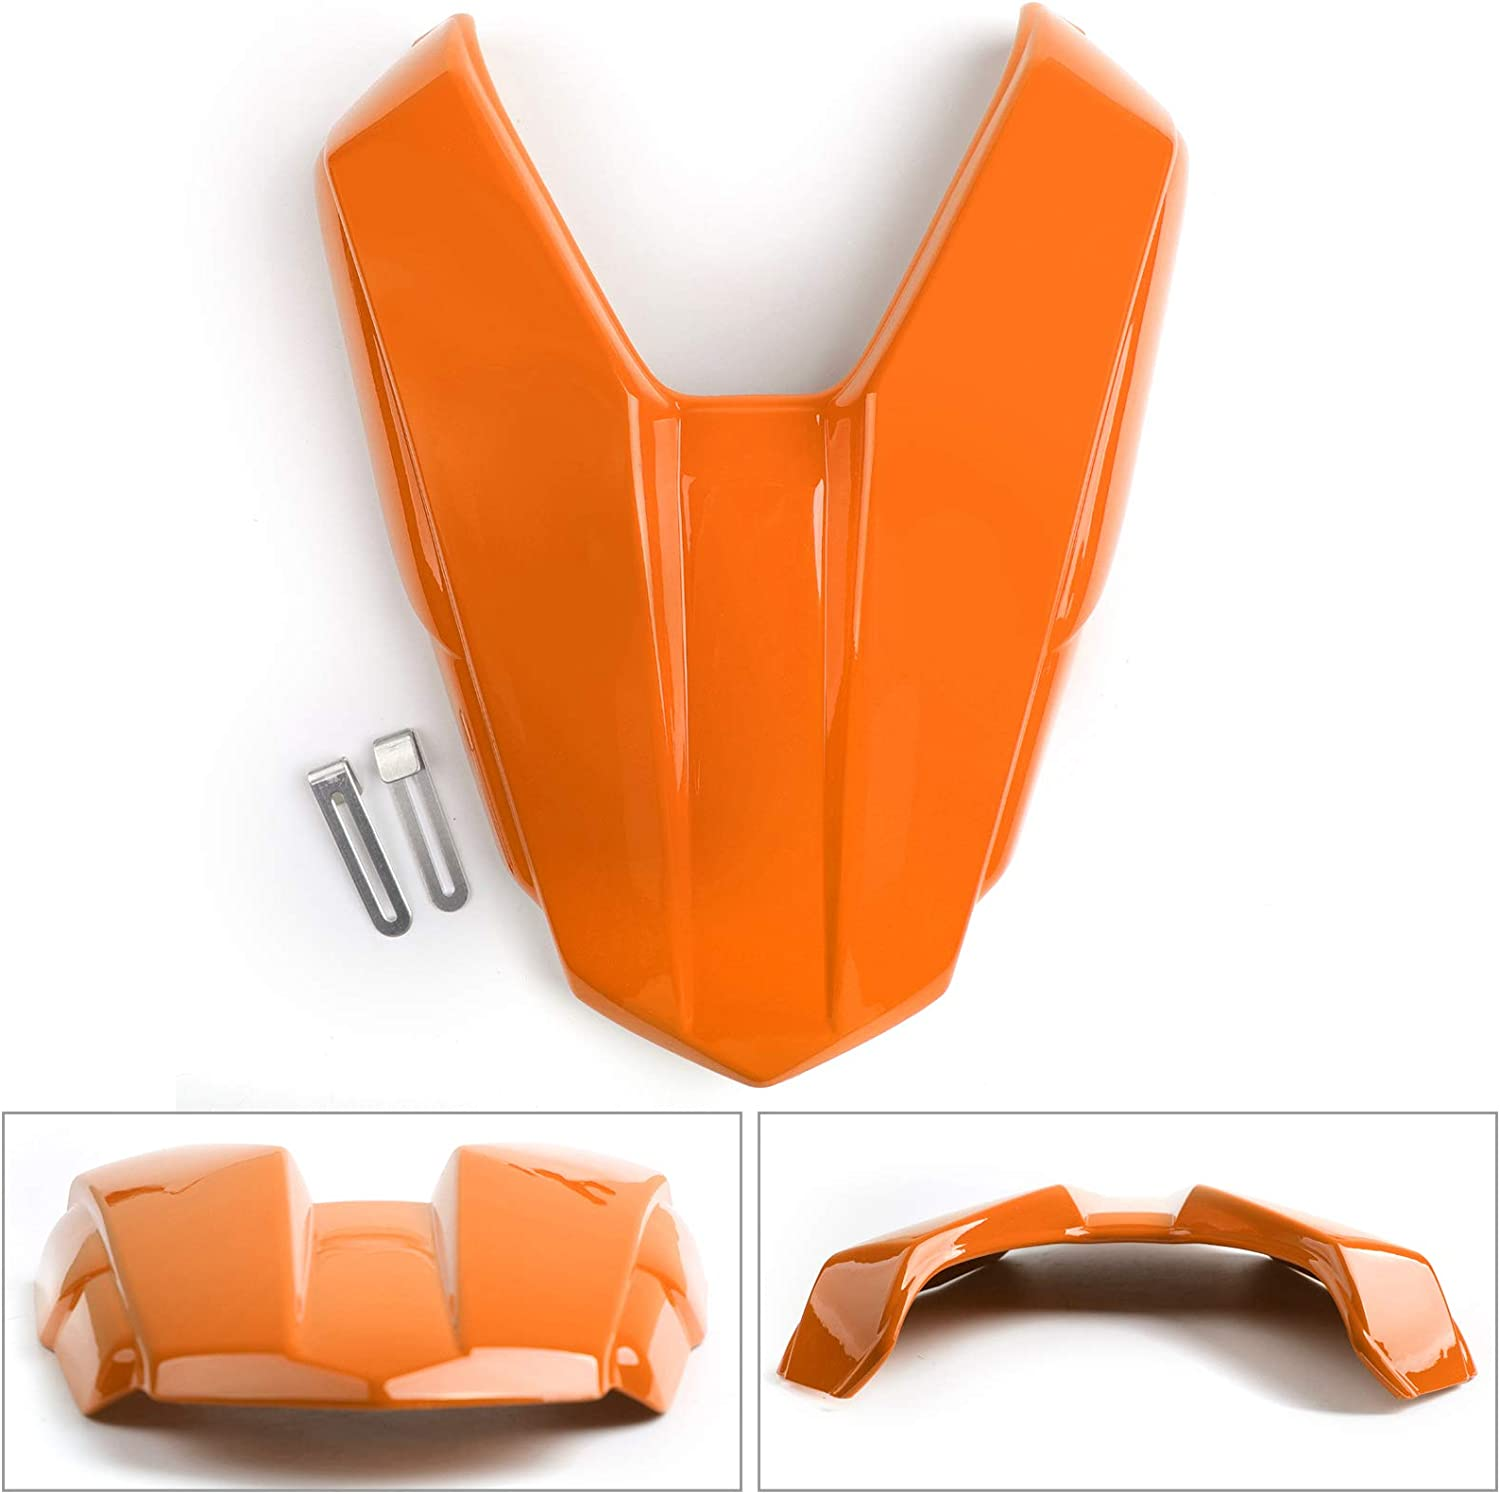 Topteng Rear Seat Cowl,Motorcycle Rear Passenger Pillion Solo Seat Cowl Hard ABS Pad Motor Fairing Tail Cover for Hon-da CB500F CBR500R 2016-2019